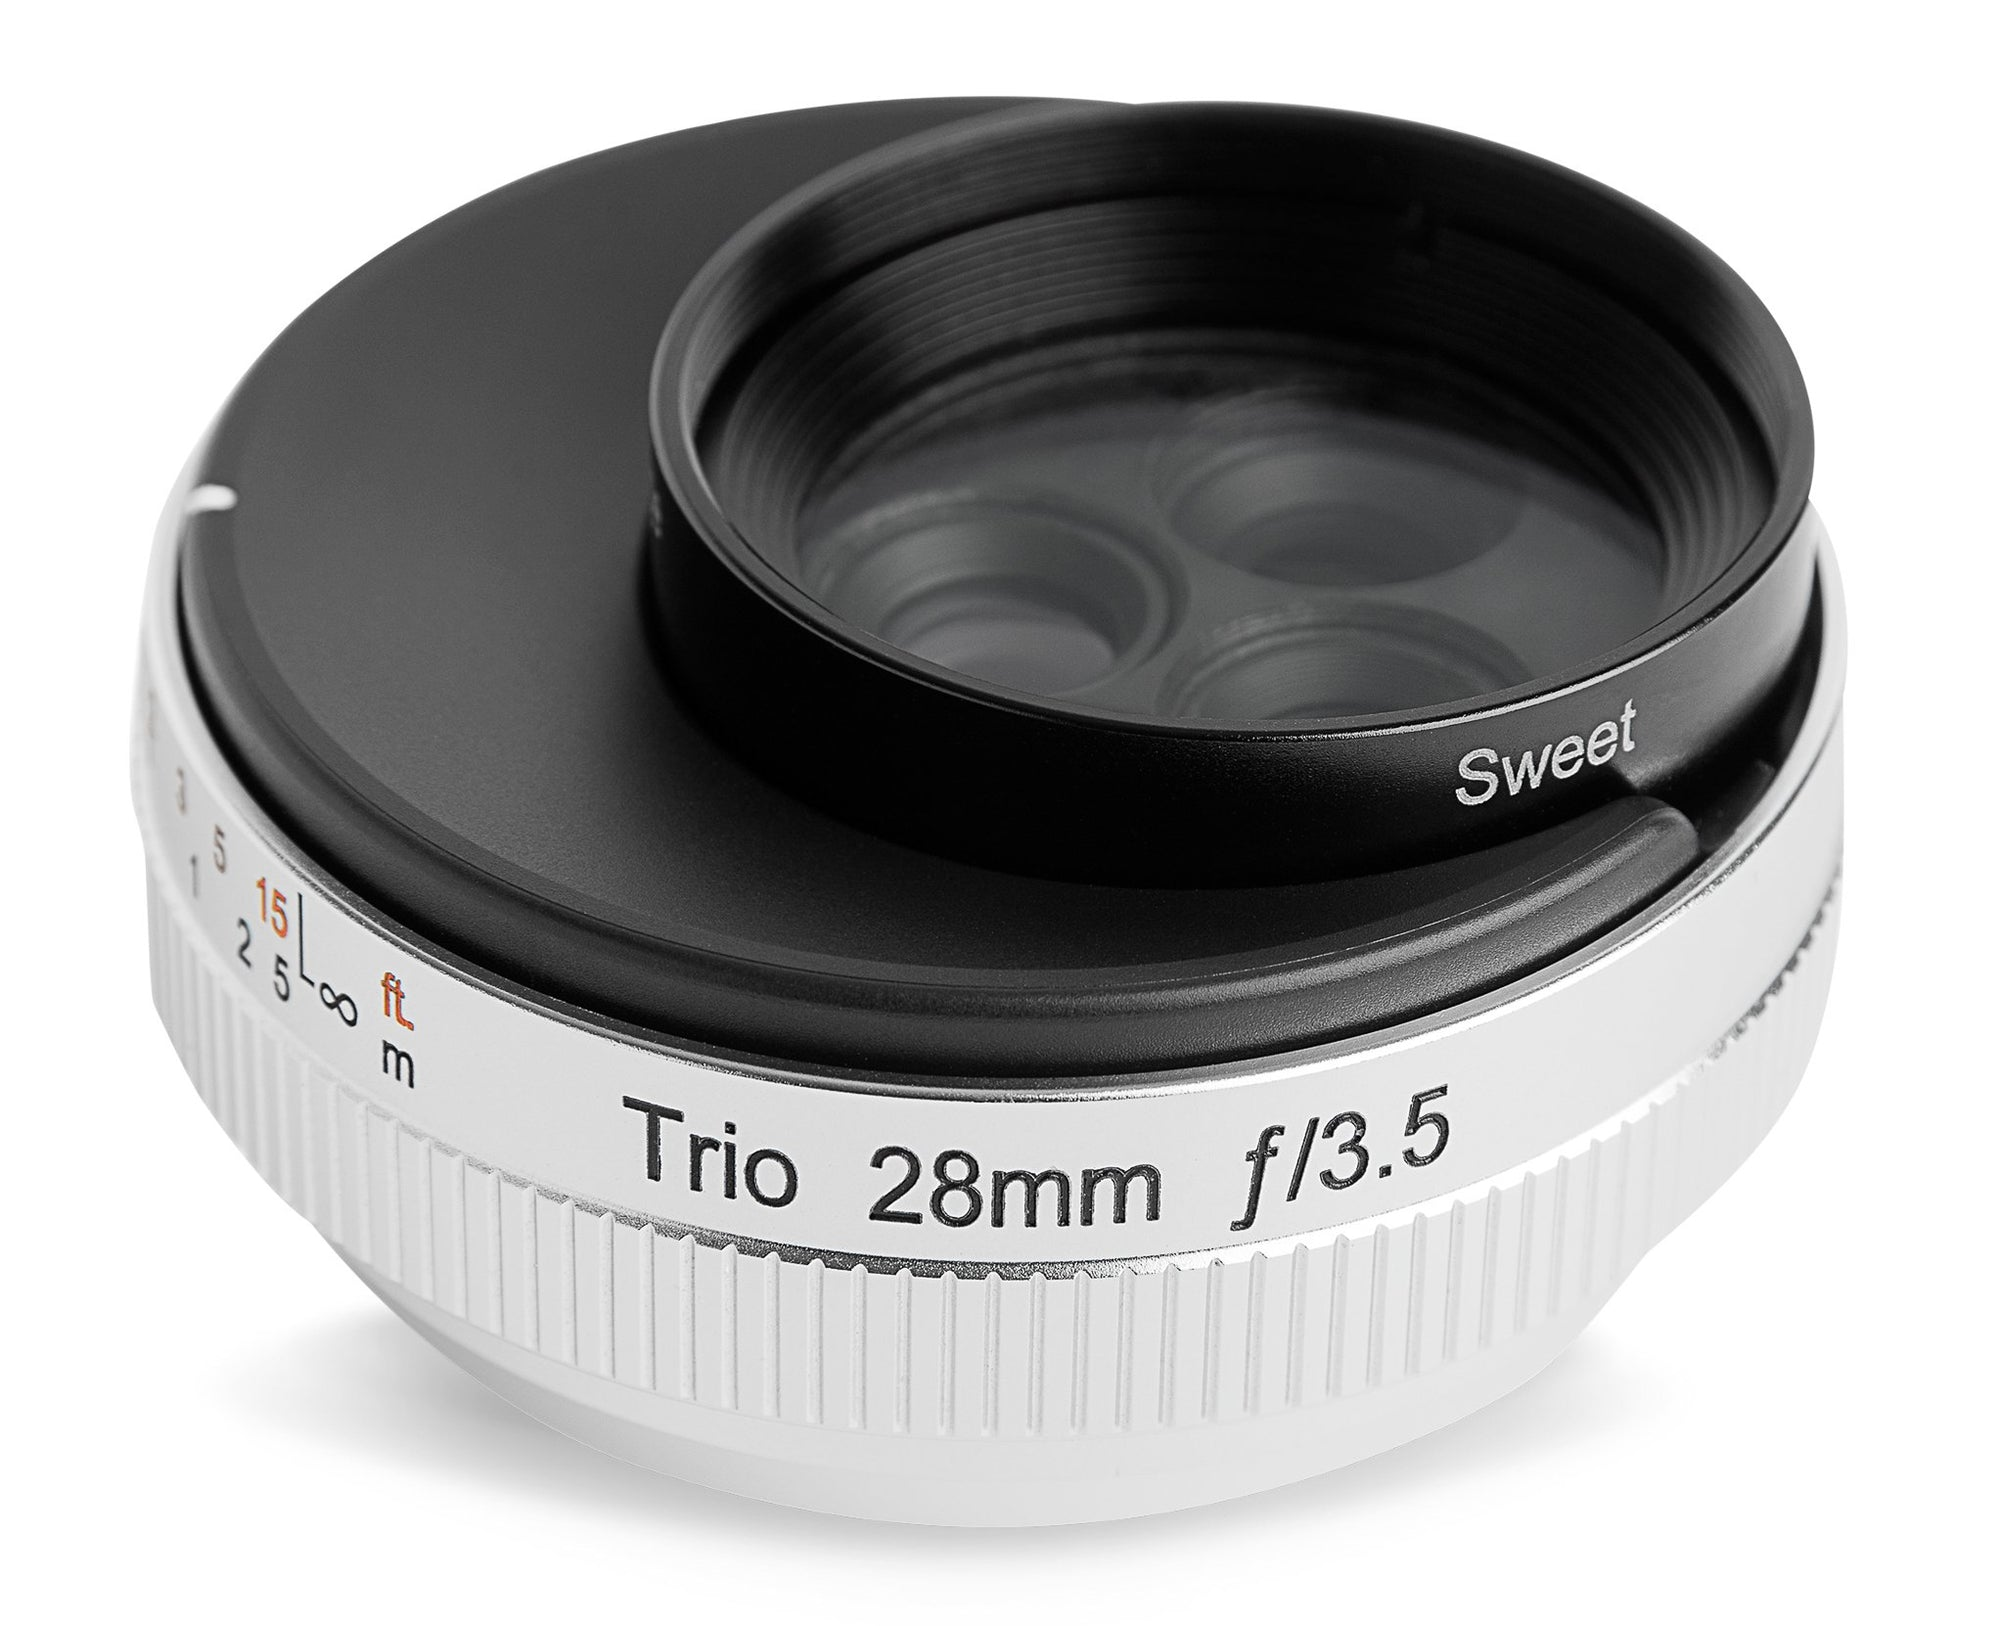 Trio 28 - Lensbaby Creative Effect Camera Lenses